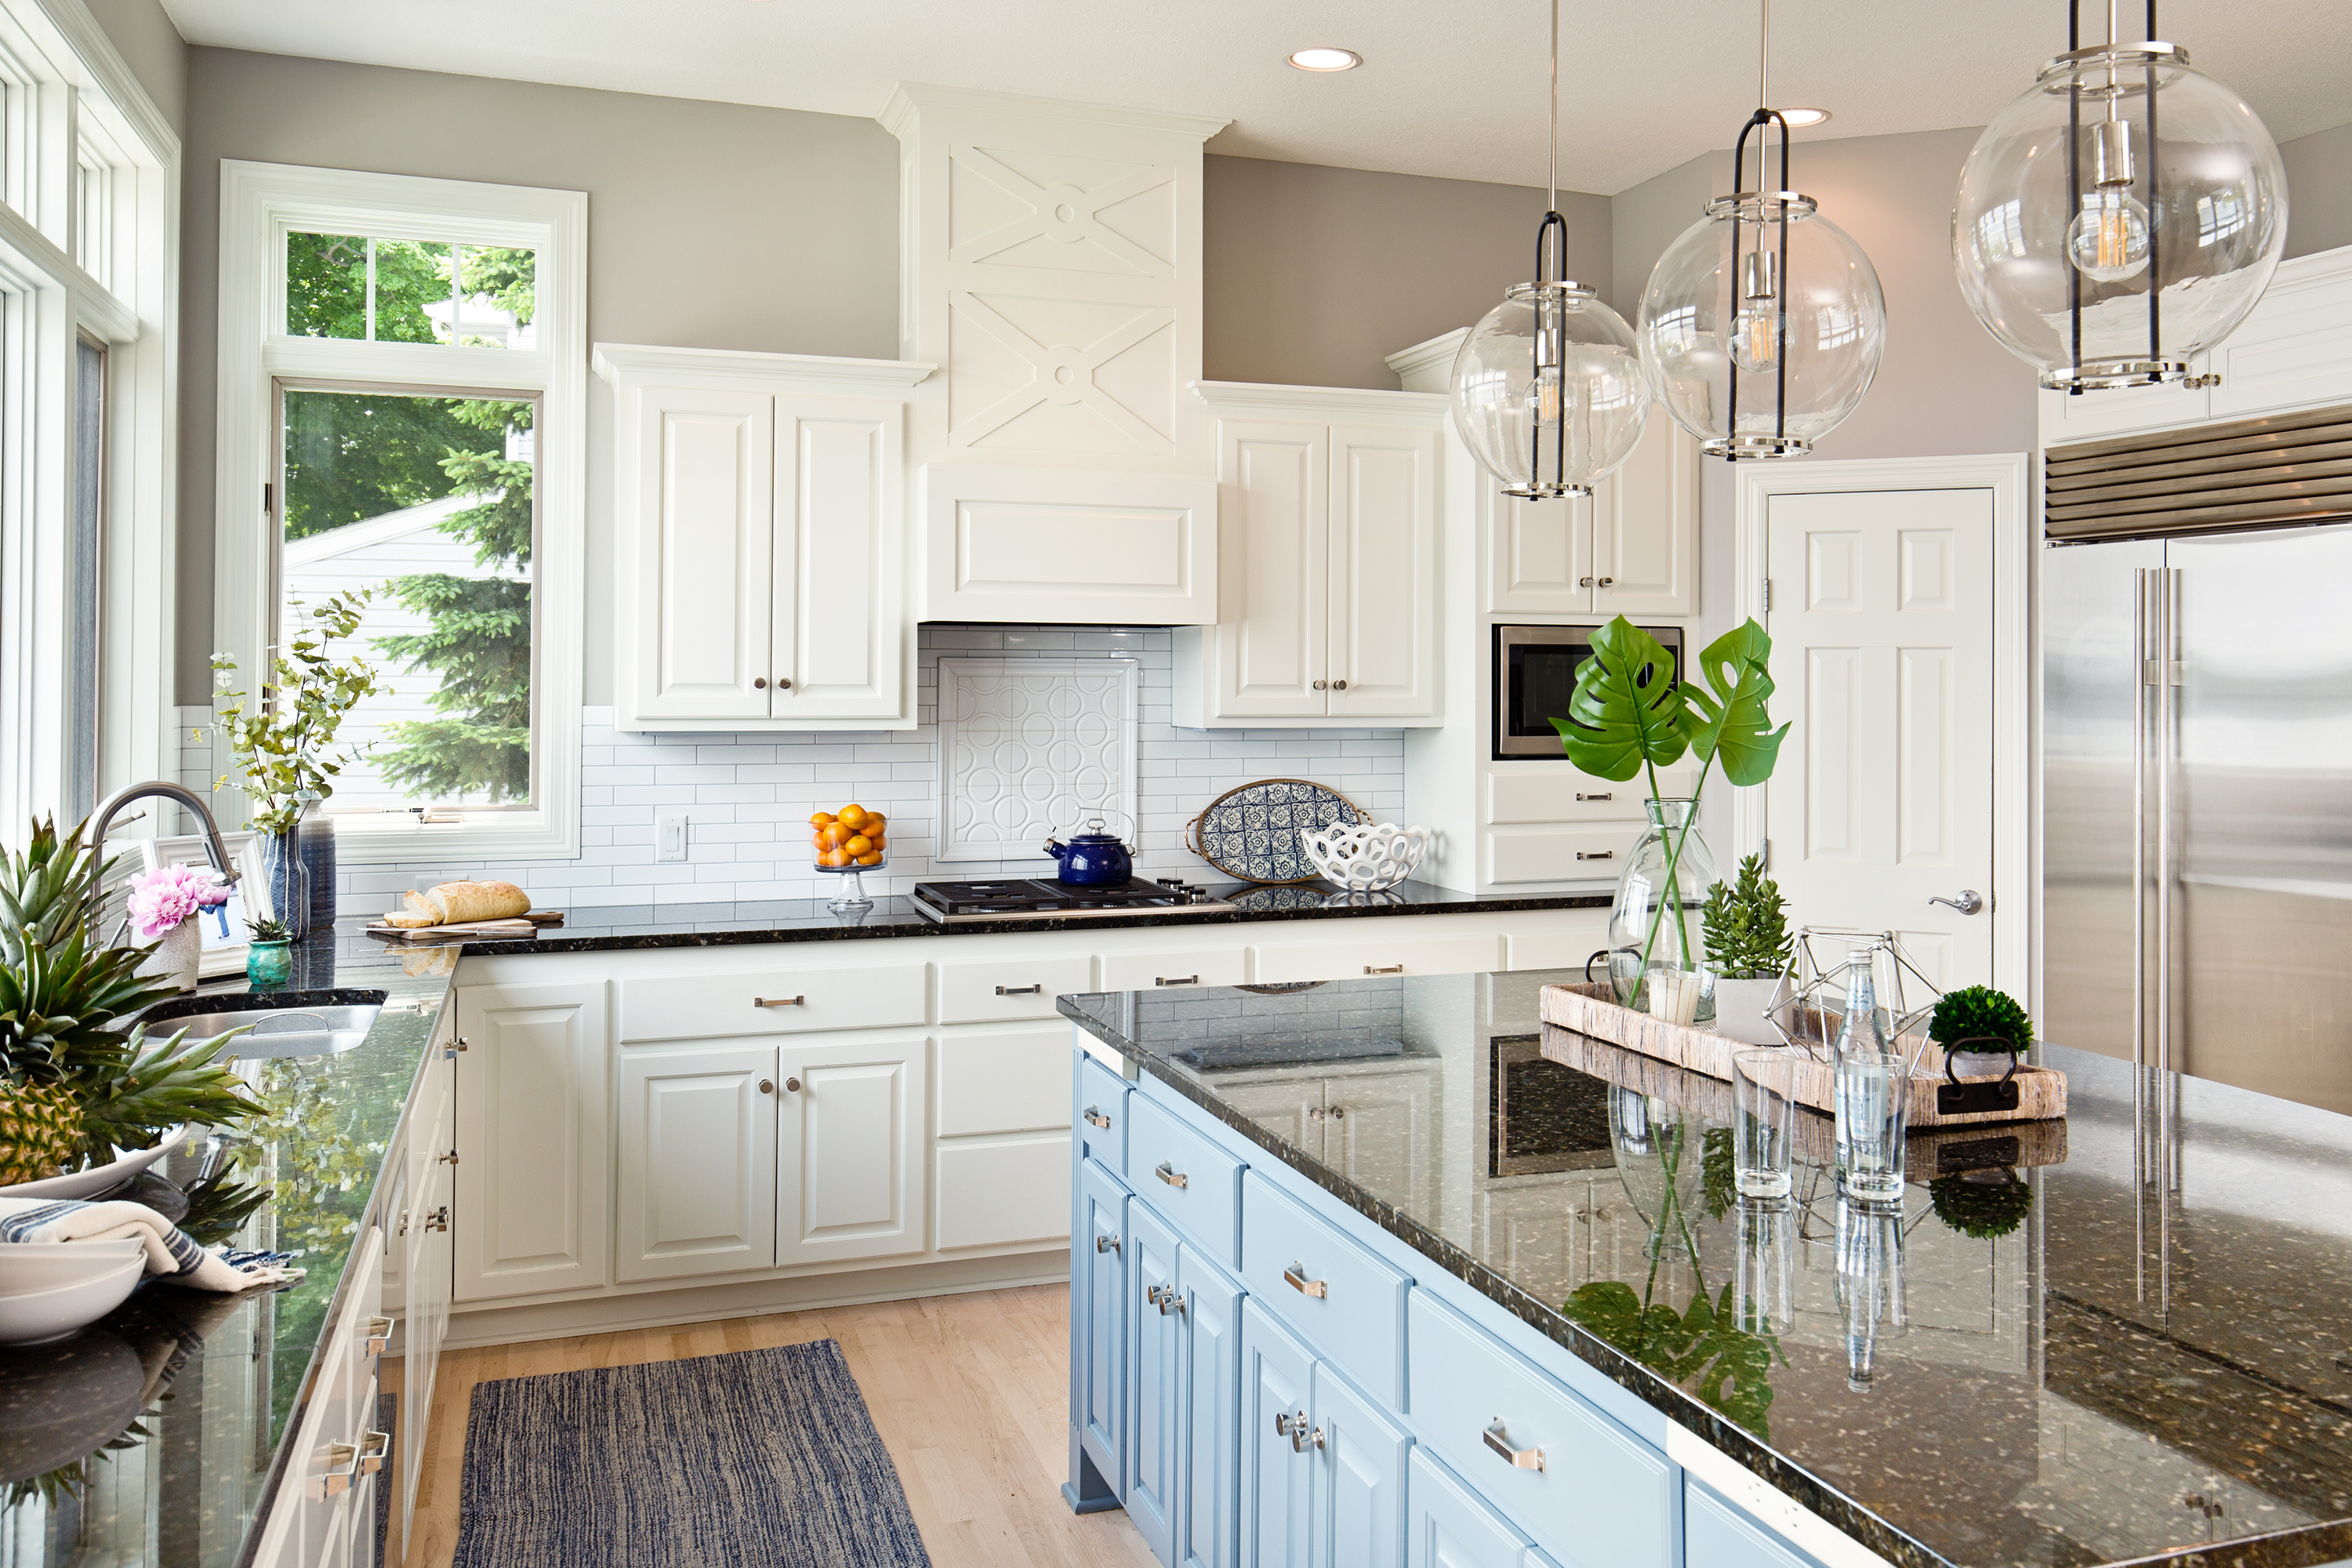 Modern kitchen with bright cabinets.